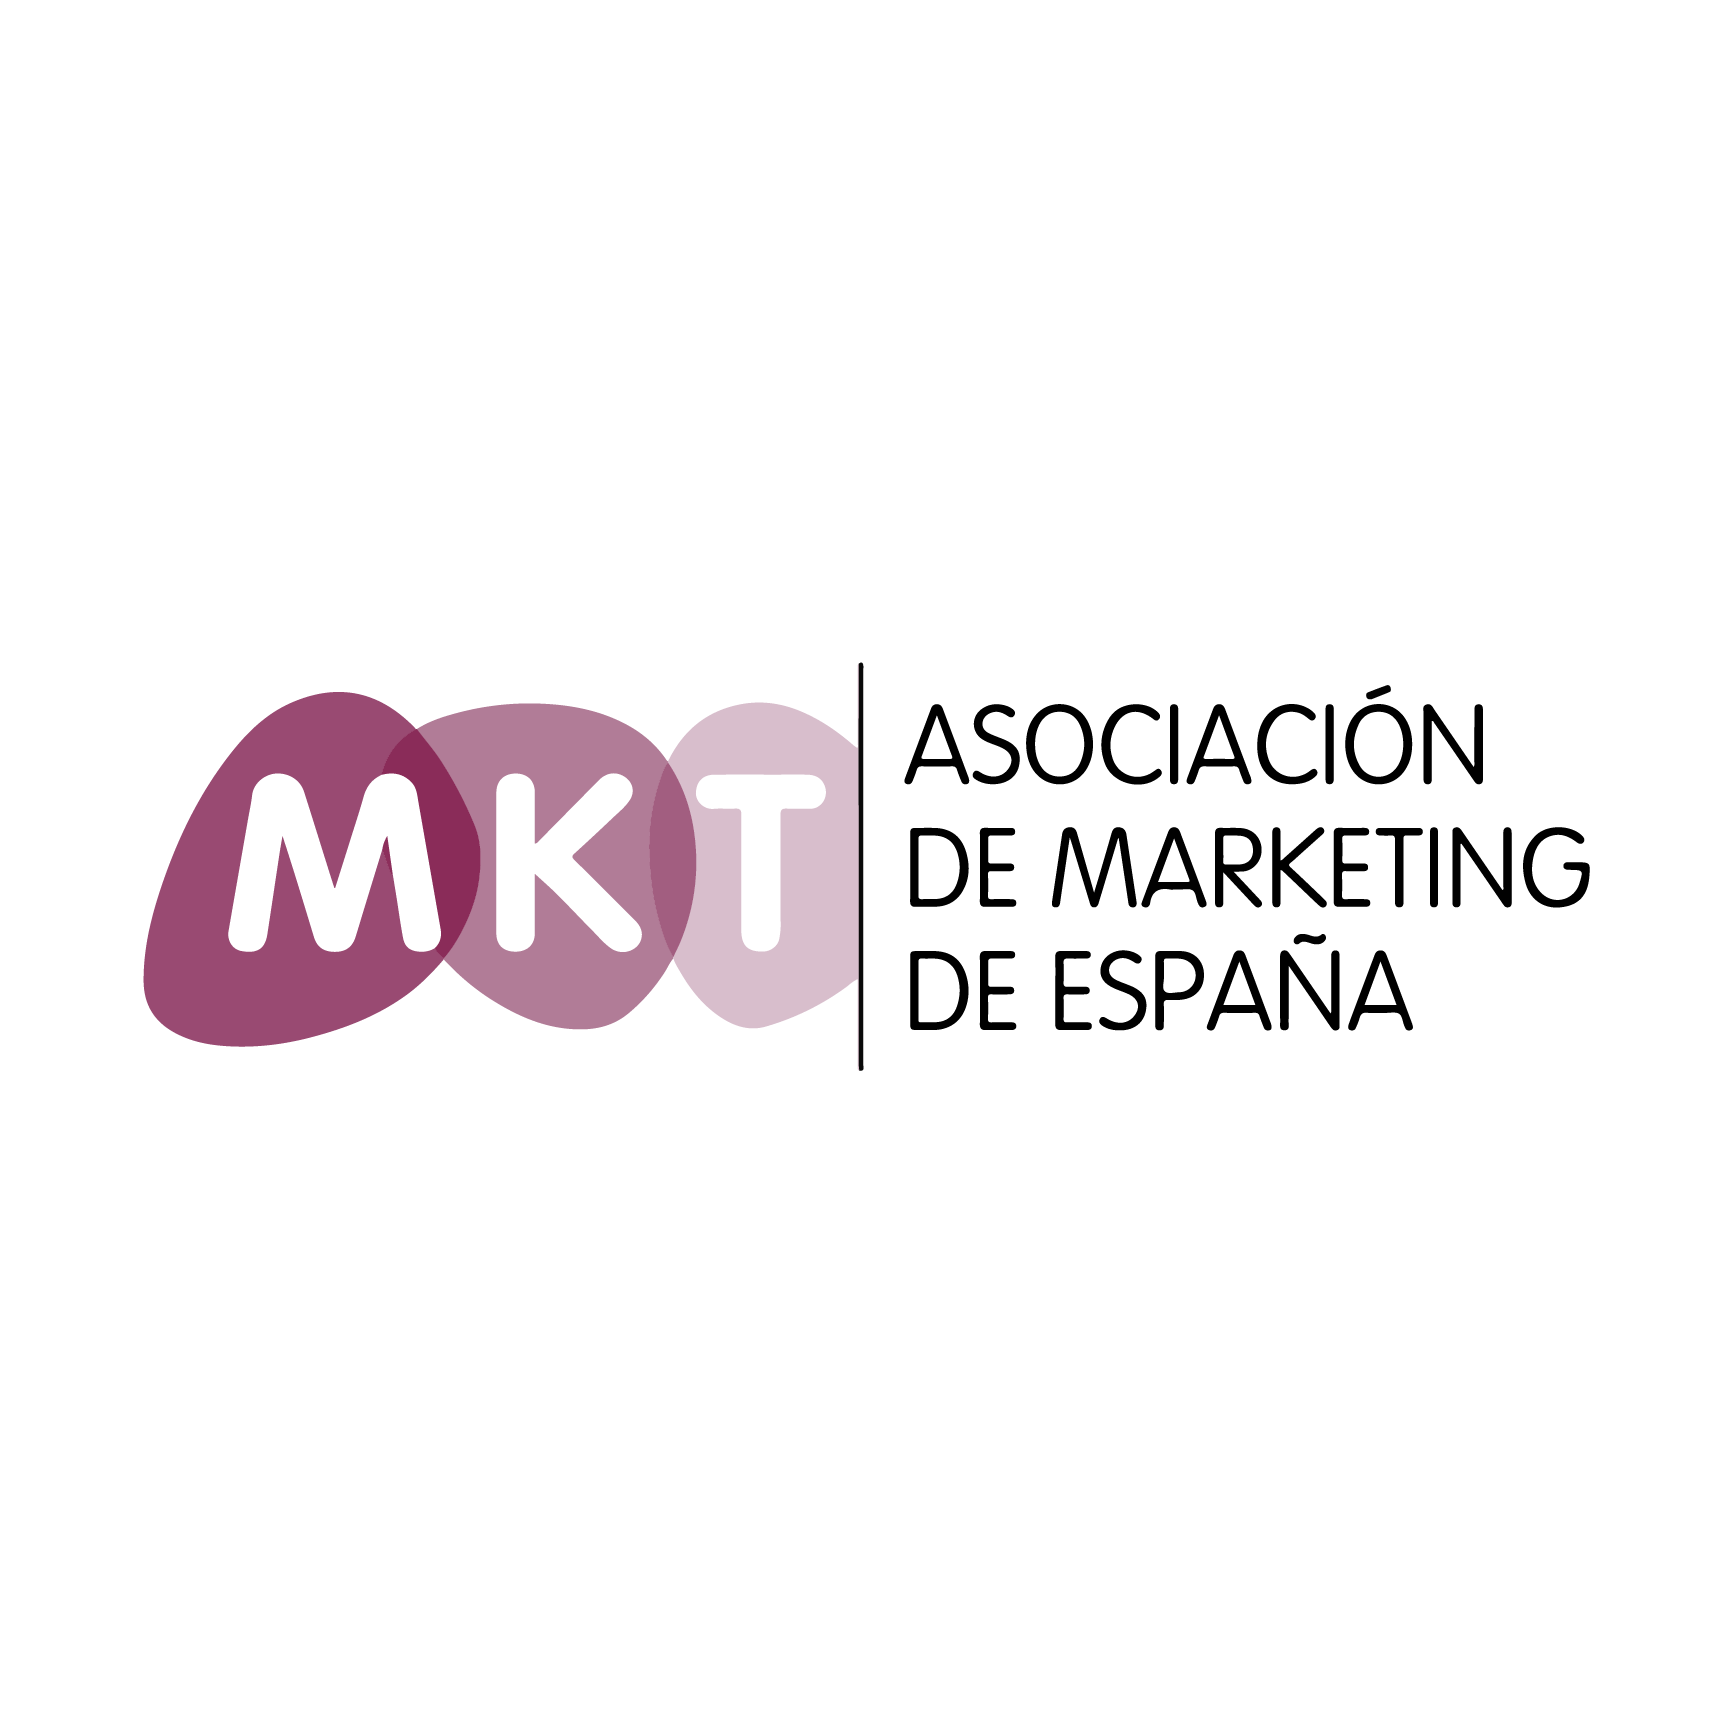 Asociación de Marketing de España – MKT